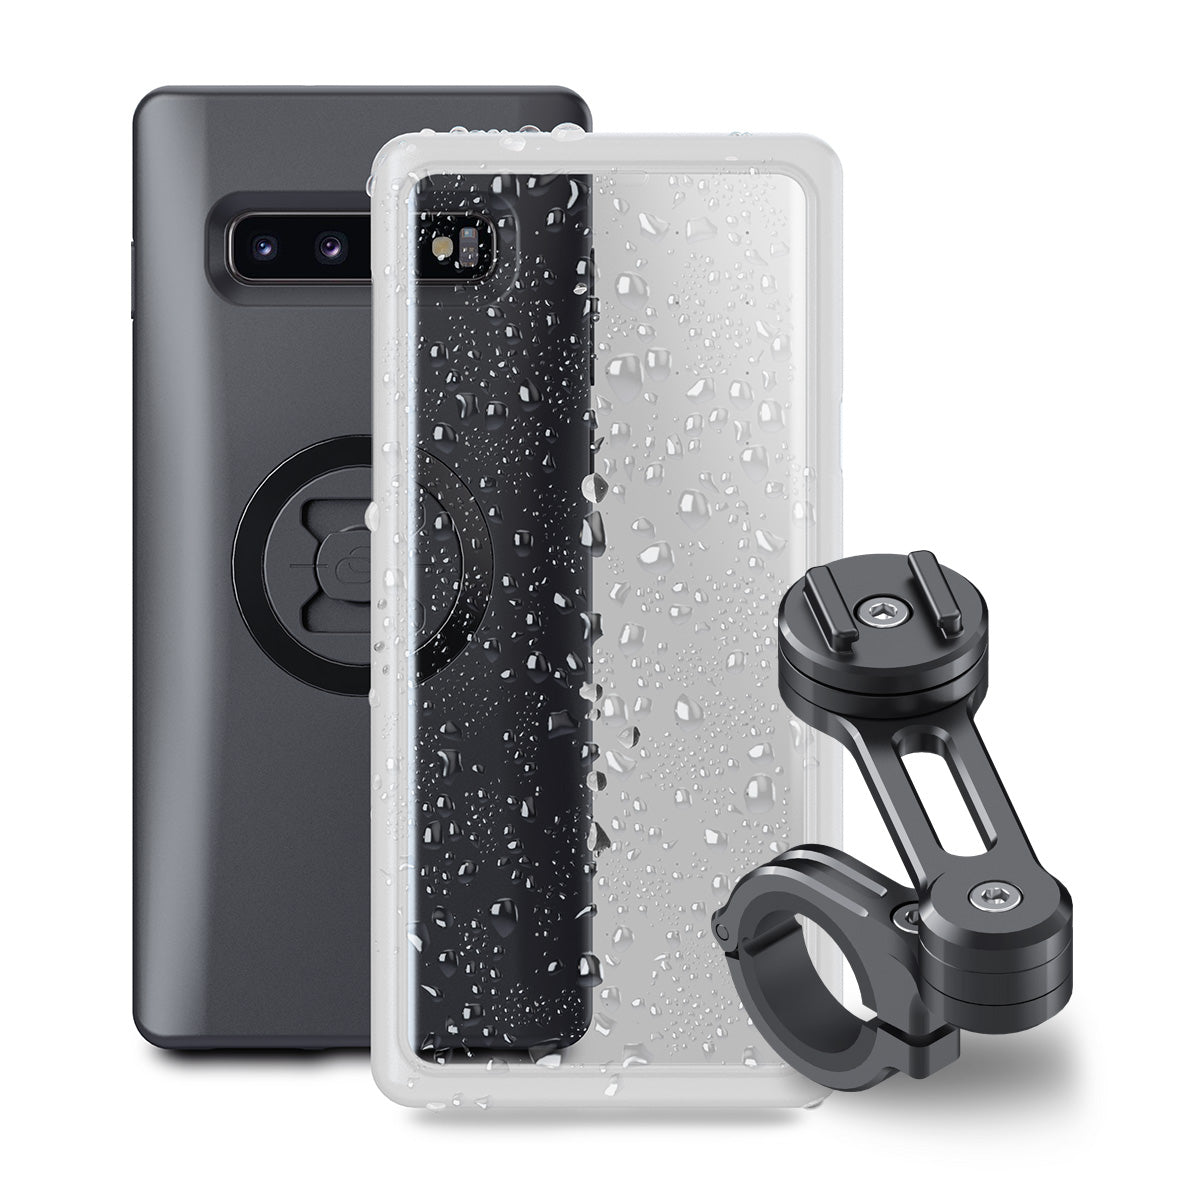 Sp Connect Moto Bundle For Mounting Your Smartphone To A Motorcycle